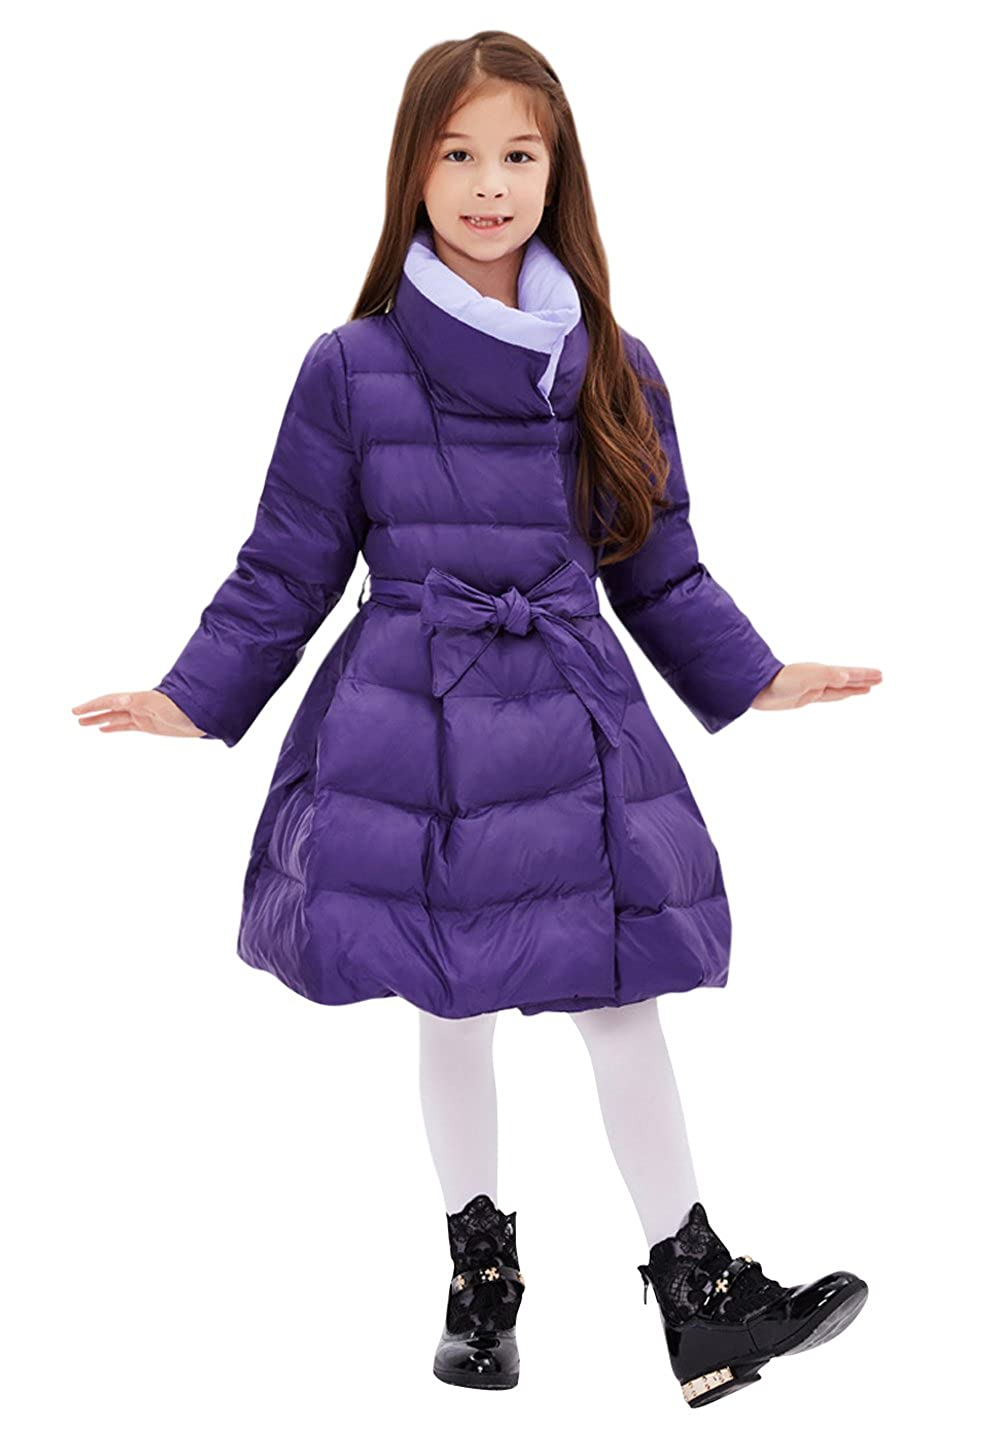 Tortor 1Bacha Kid Girls Contrast Collar Winter Long Belted Dress Down Coat